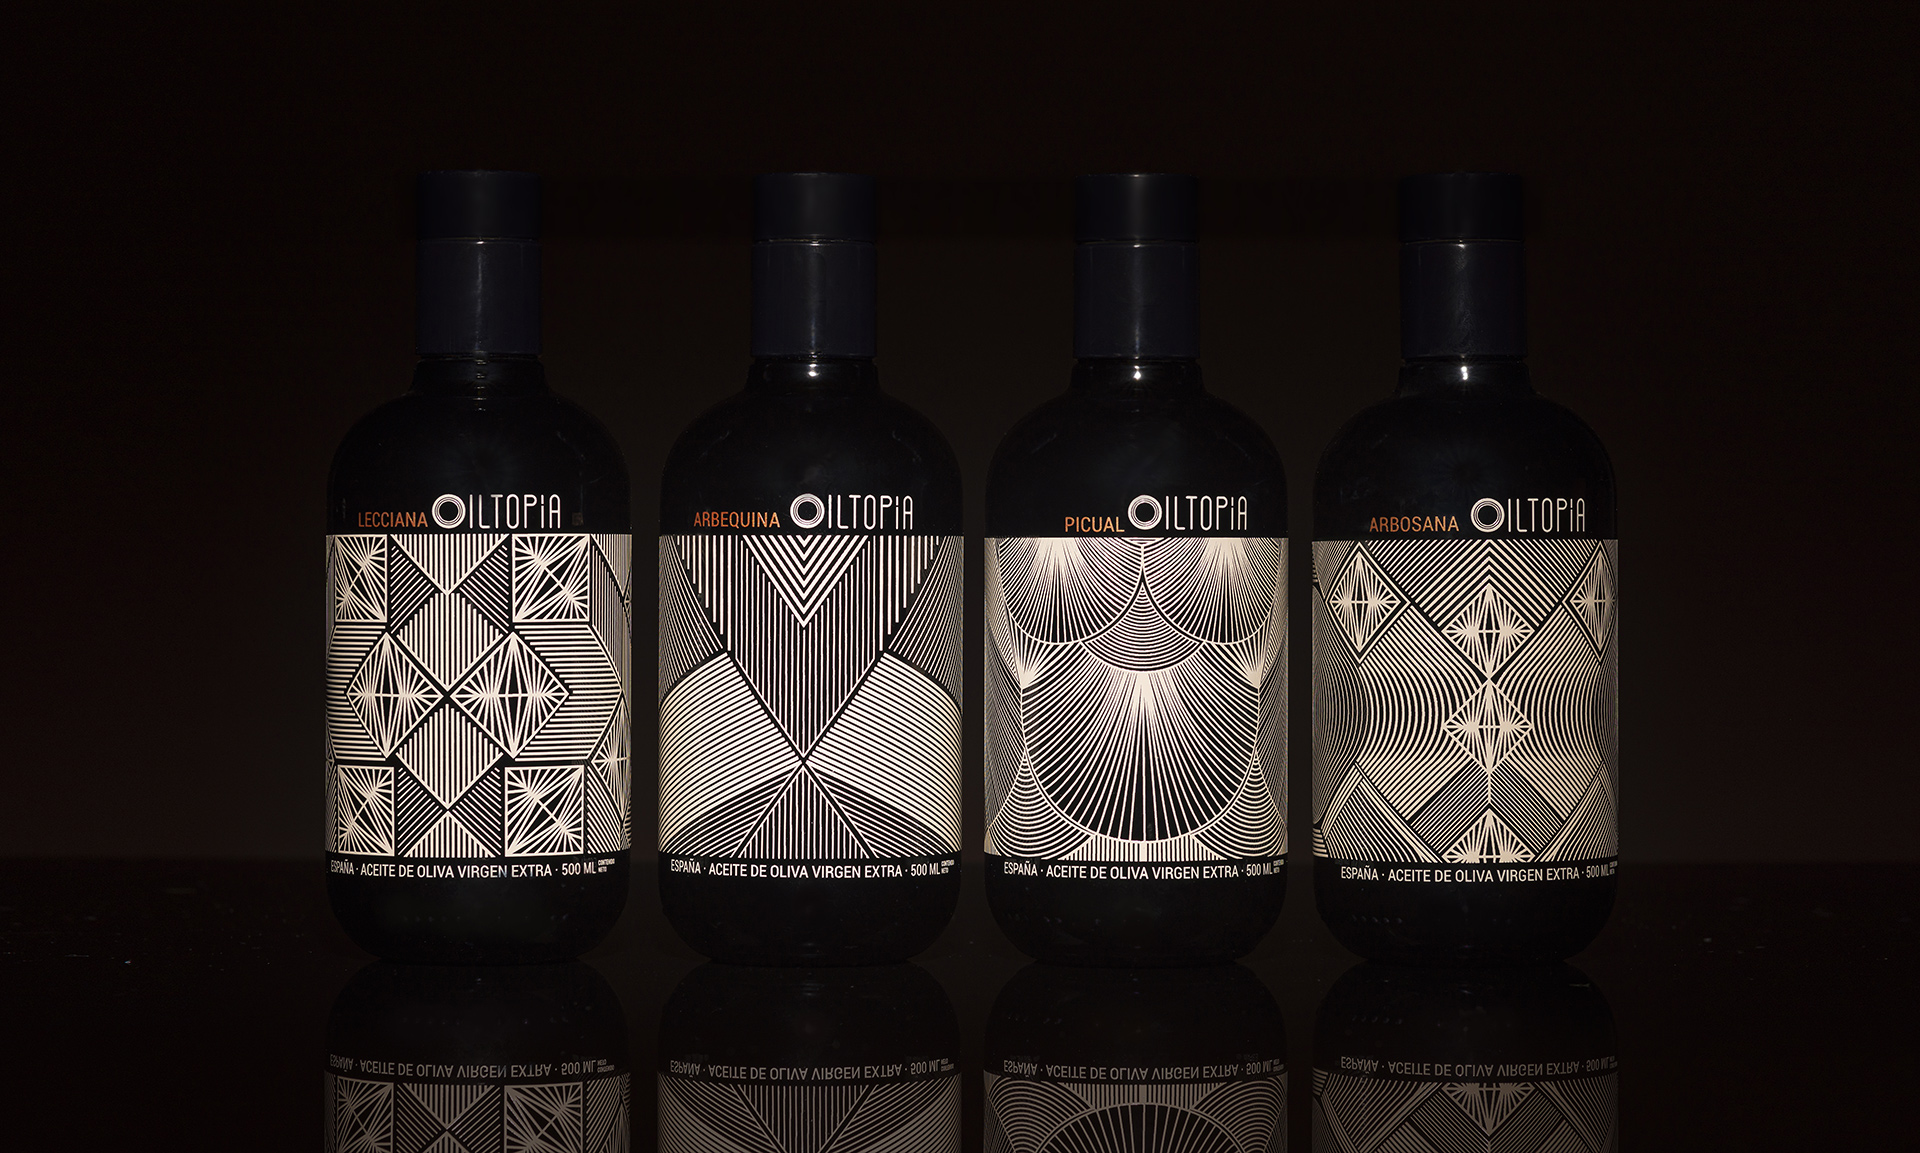 Cabello X Mure Design Packaging for Oiltopía a Utopian Evoo Extra Virgin Olive Oil